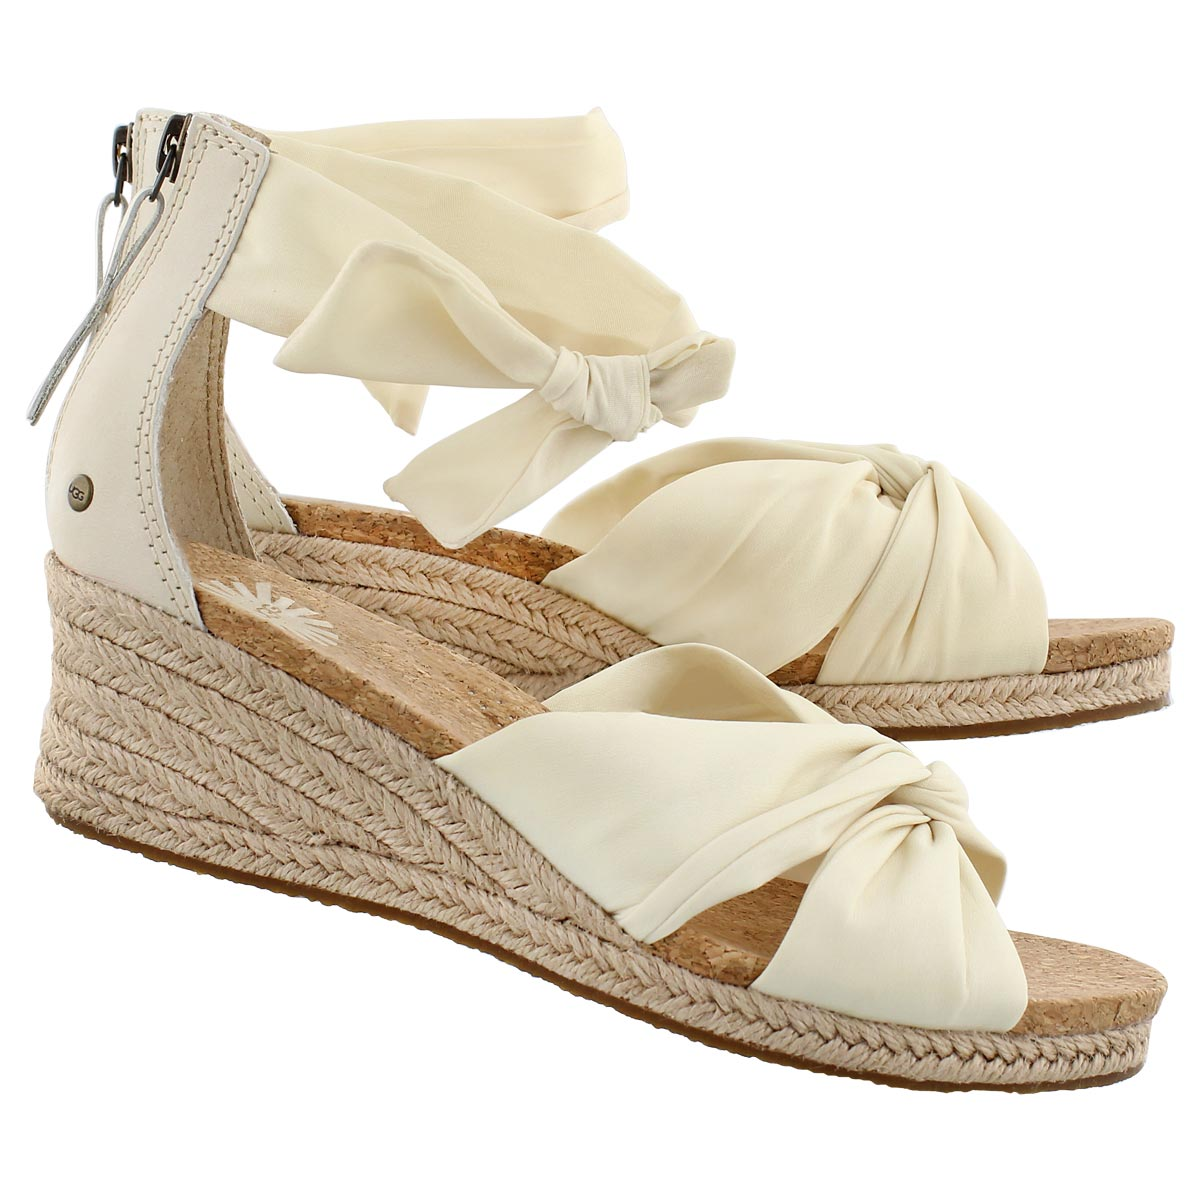 Lds Starla cream fabric wedge sandal